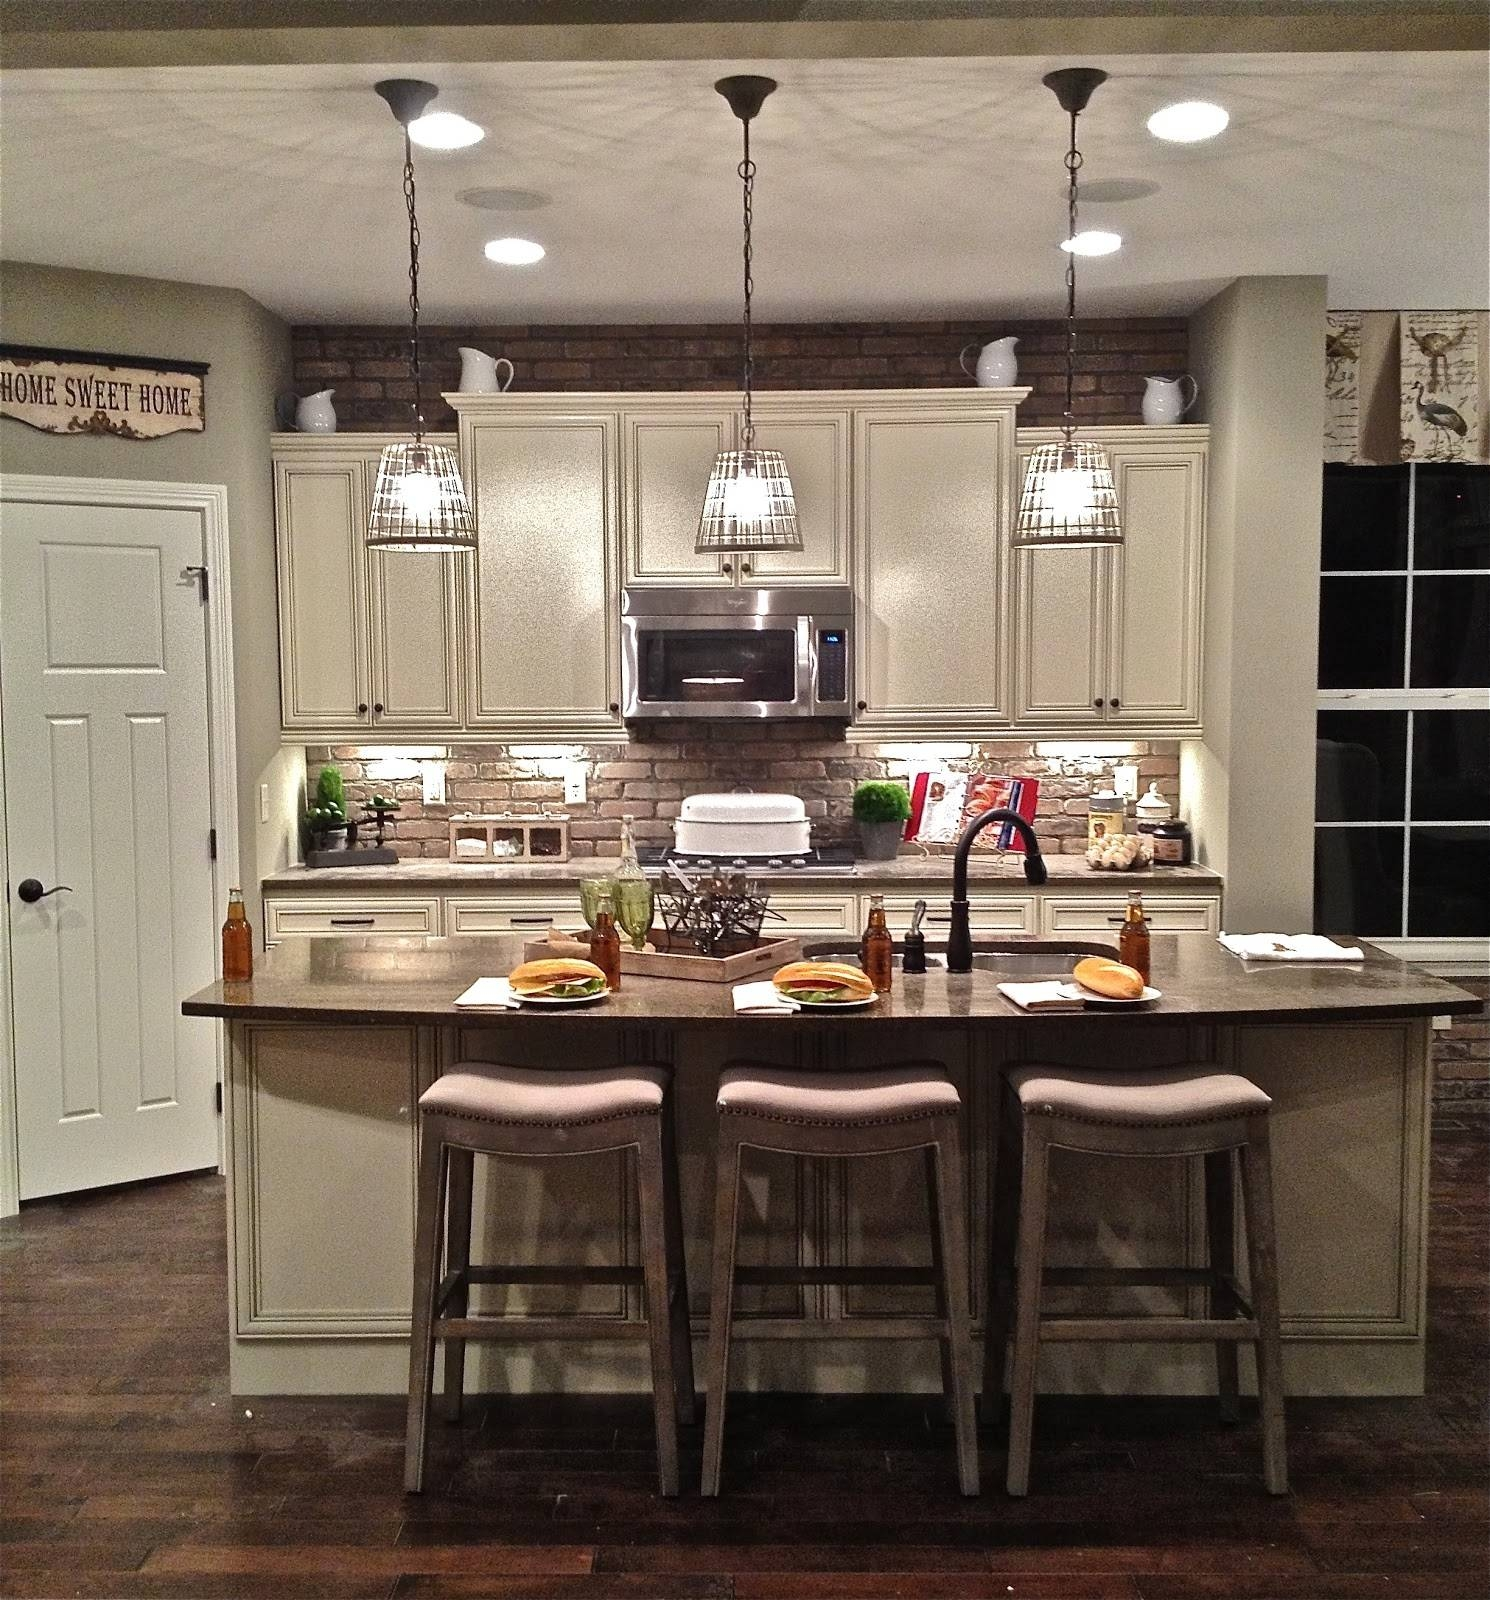 Inspirations Of Double Pendant Lights For Kitchen - Double pendant light kitchen